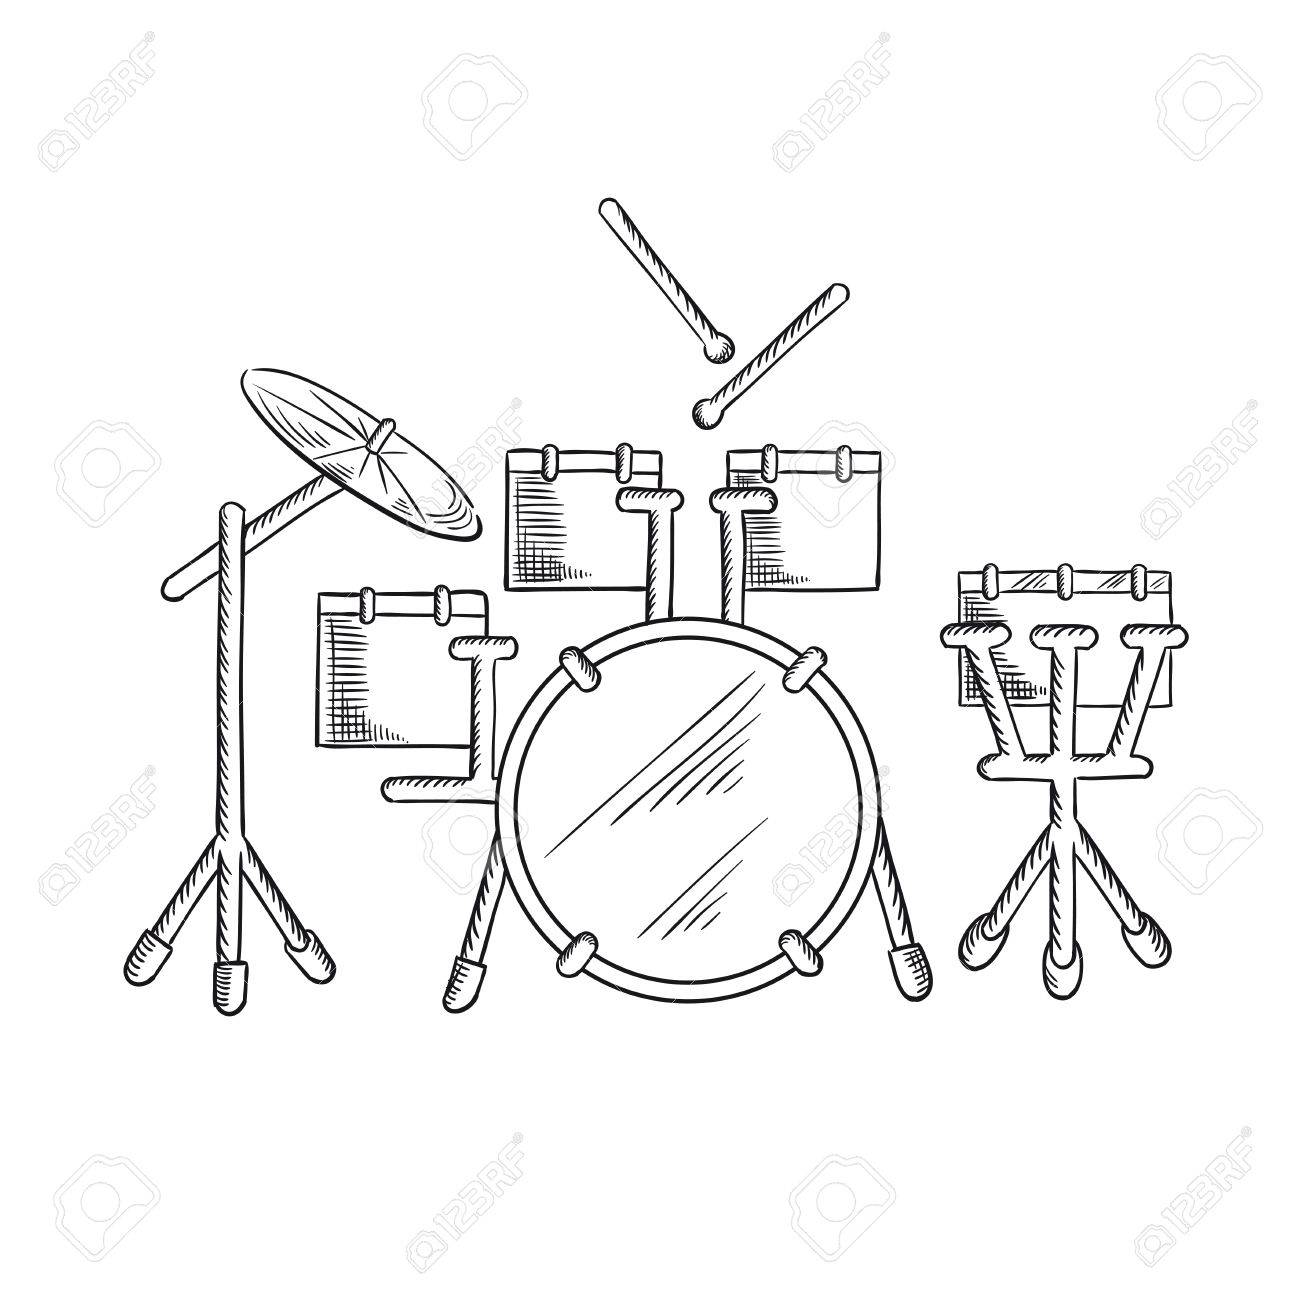 hight resolution of drum set sketch with traditional kit of bass drum two hanging toms snare drum